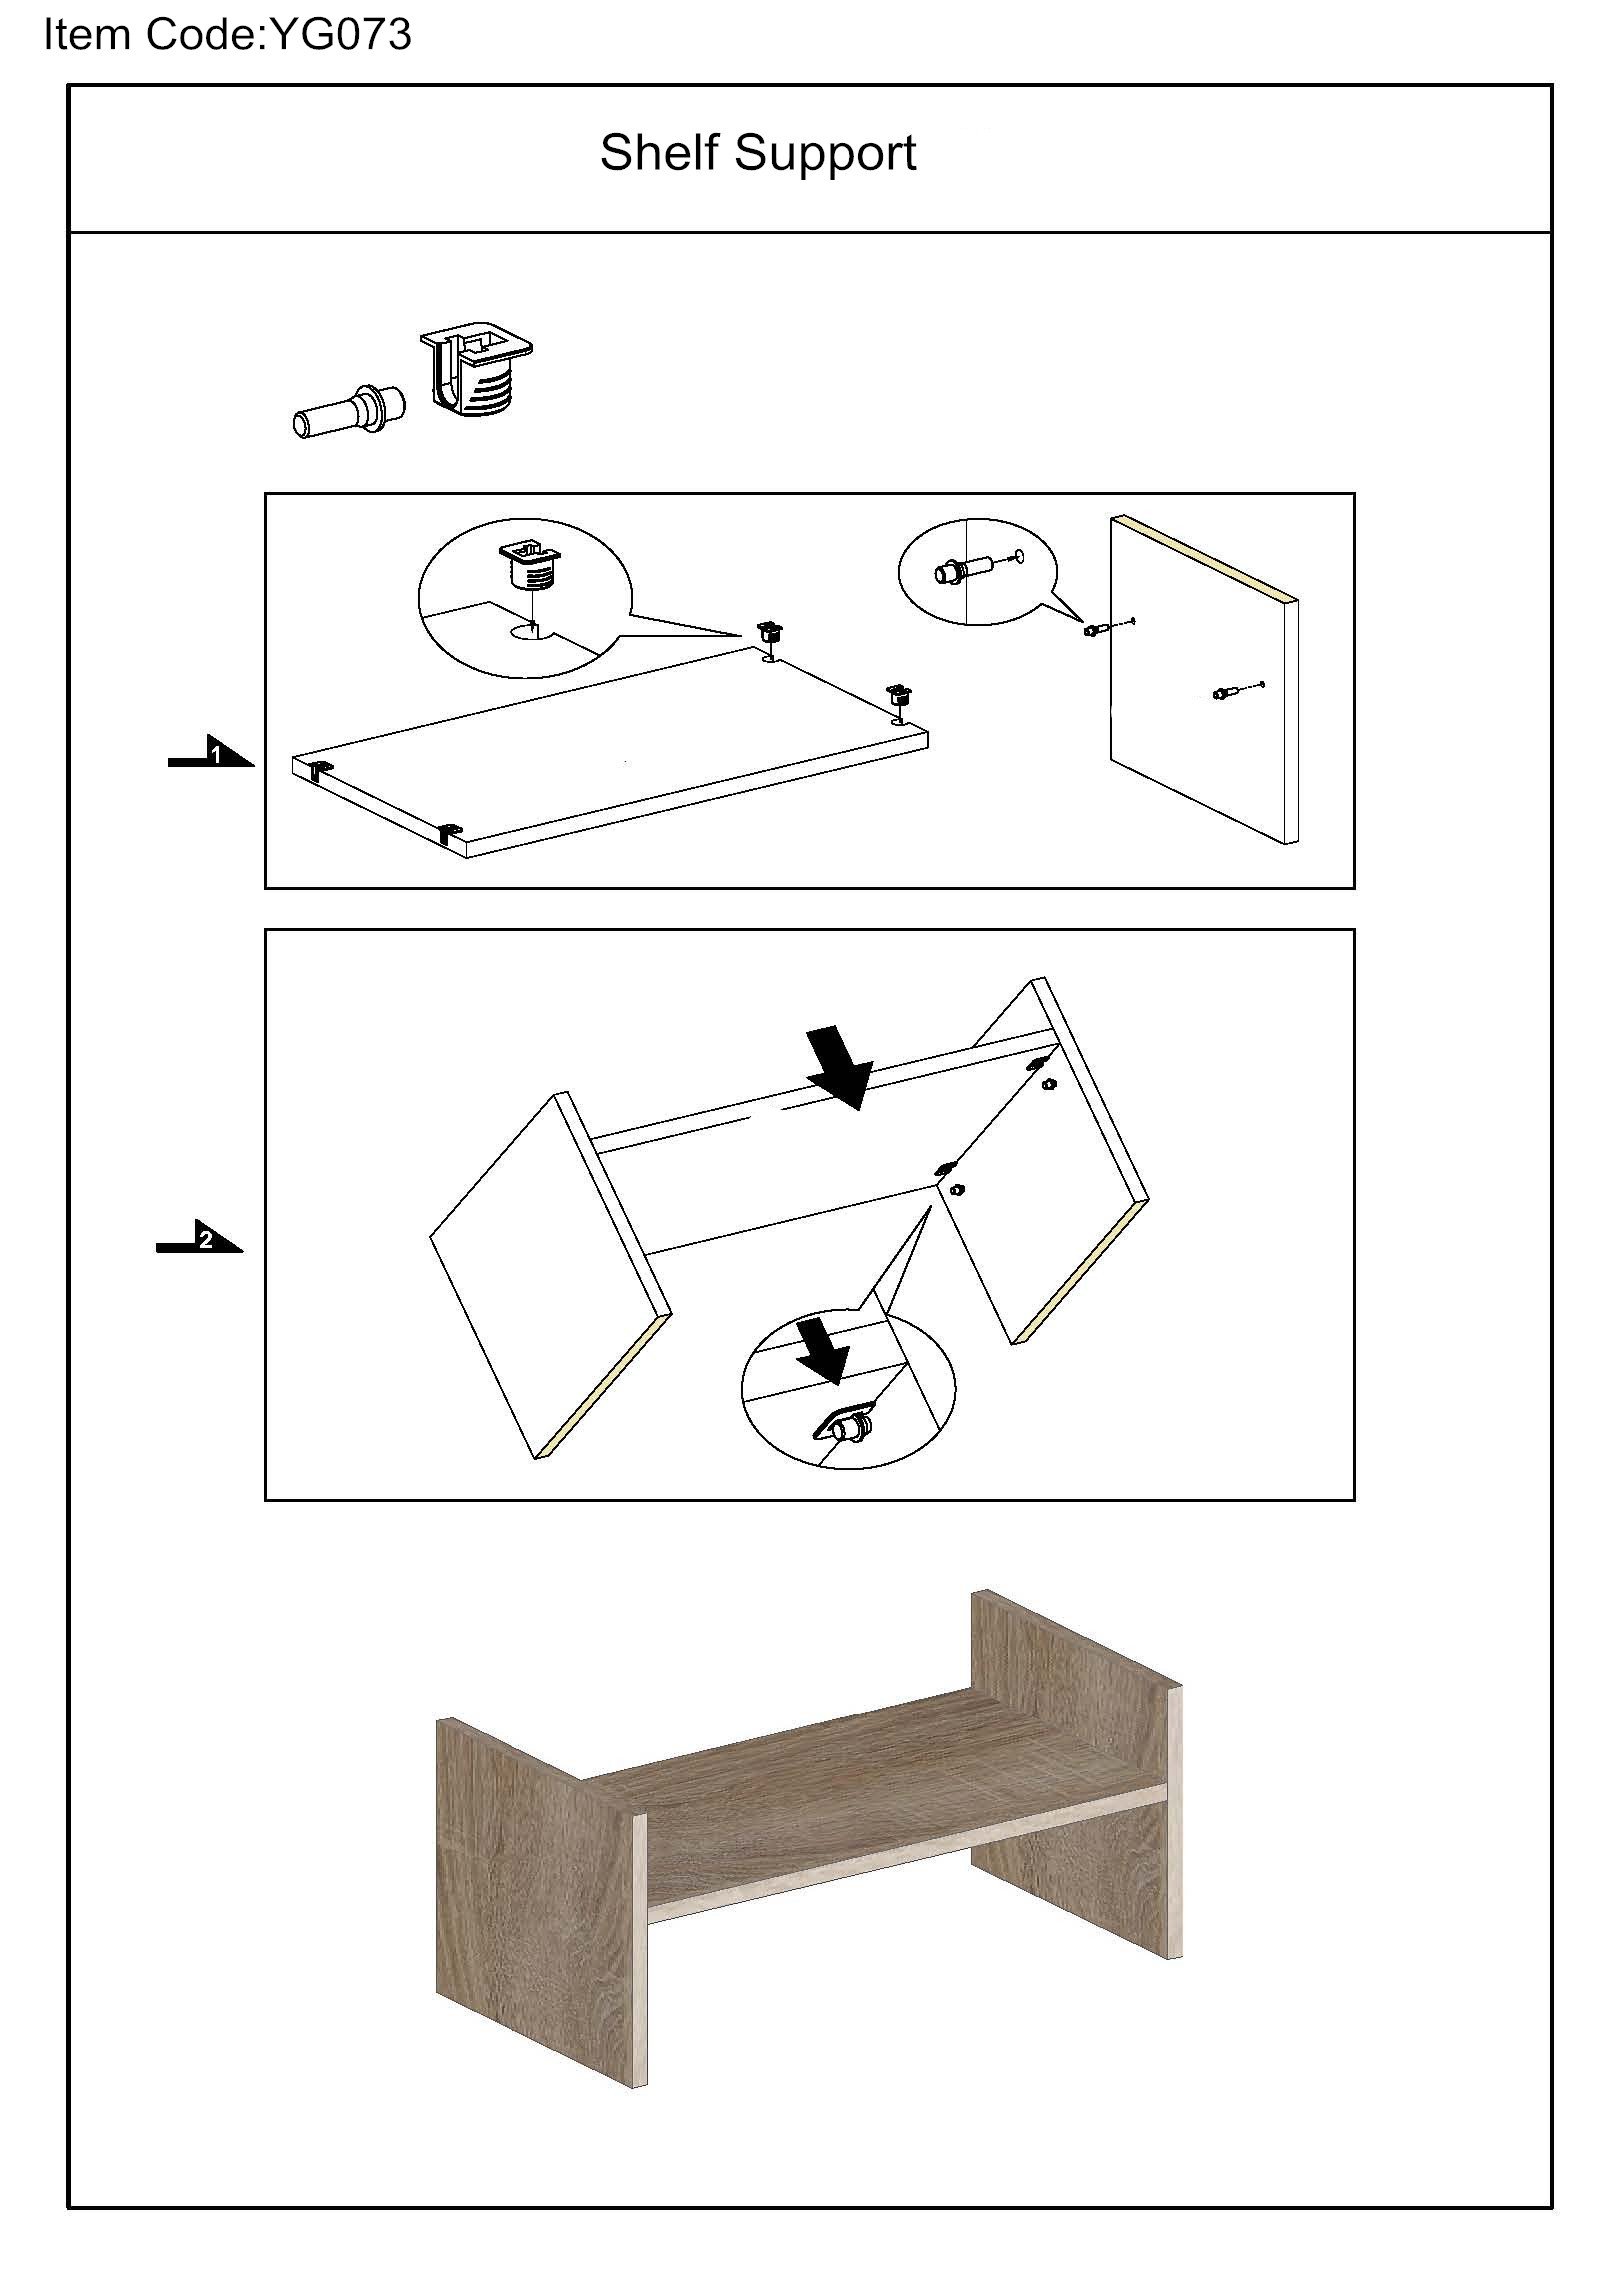 YG073 AI plastic shelf support